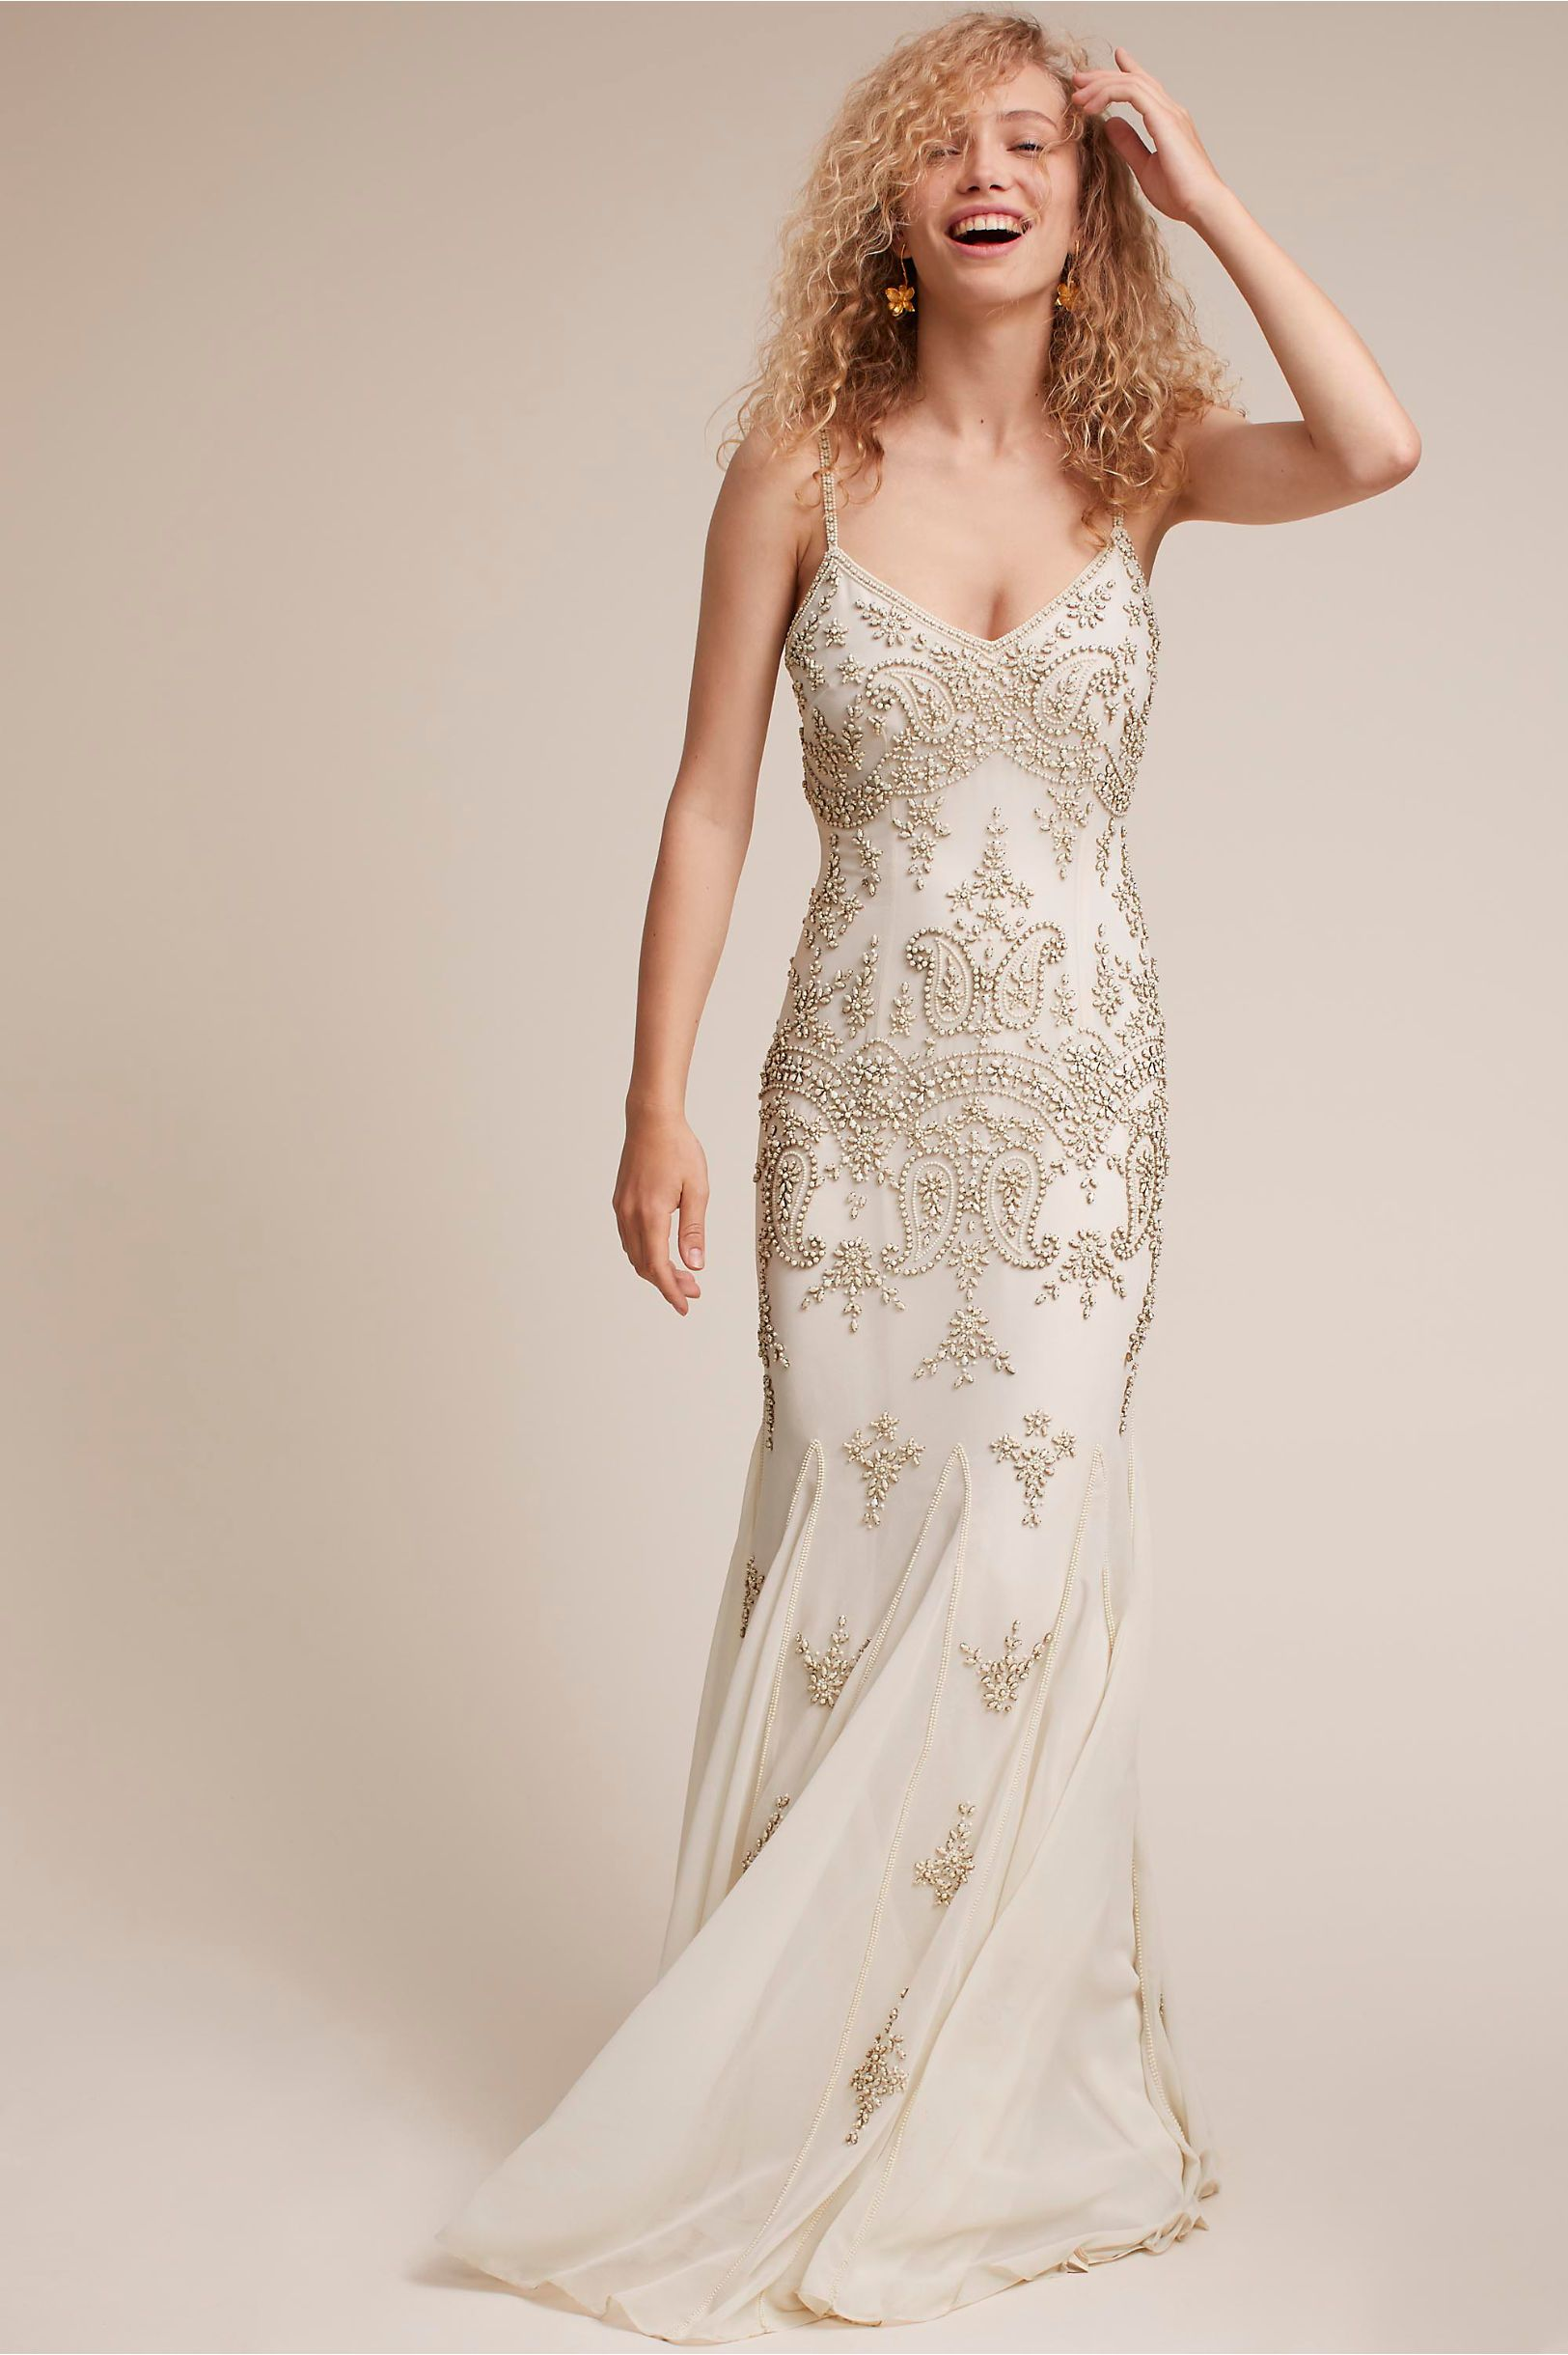 Bhldnus new line of wedding dresses is crazy affordable engaged